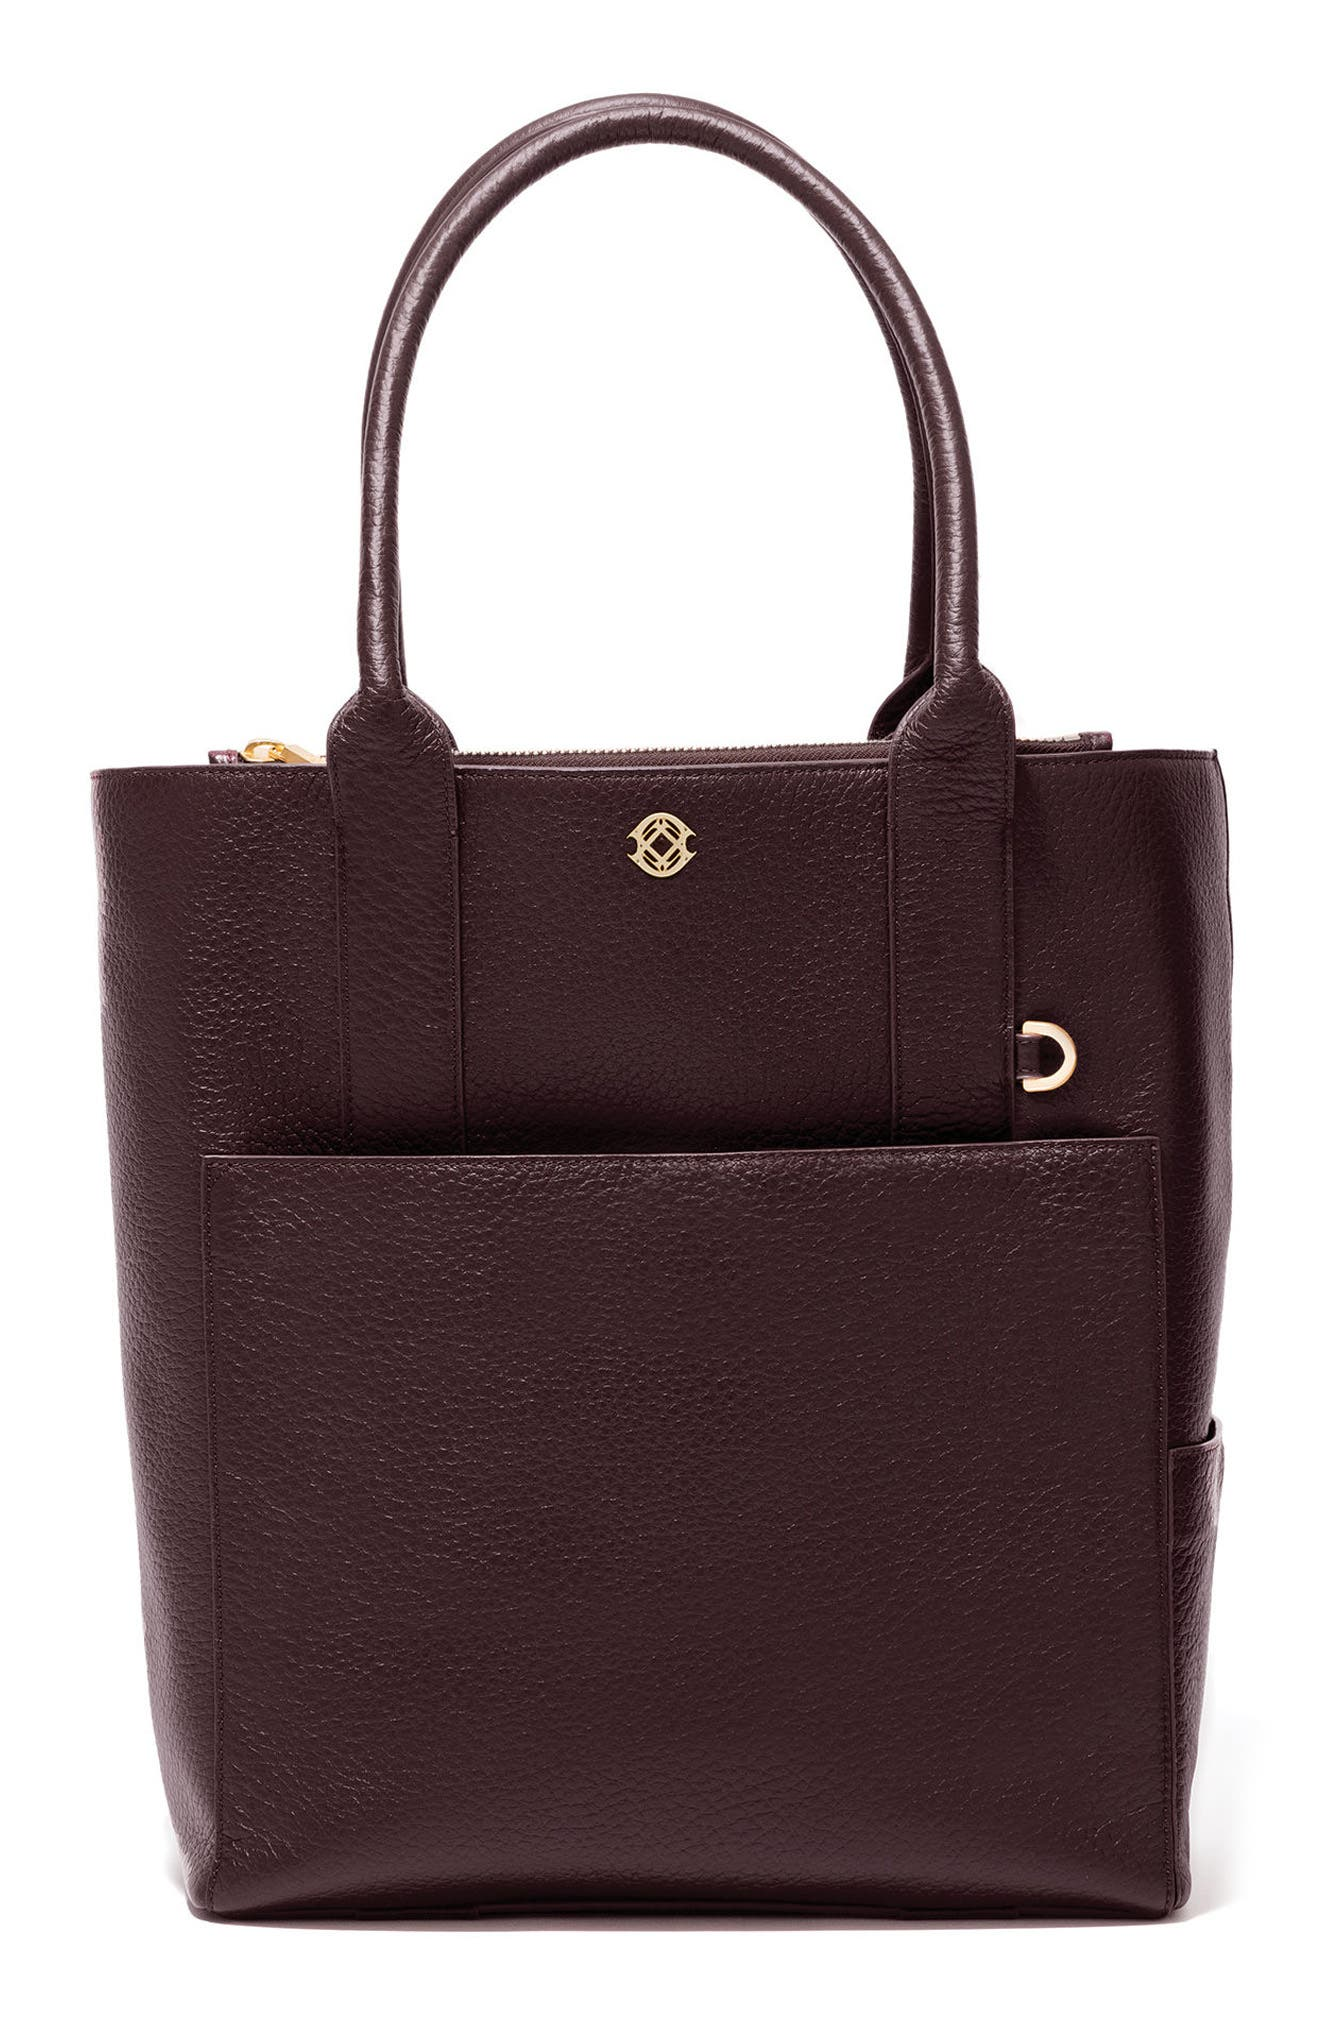 Charlie Leather Tote,                             Main thumbnail 1, color,                             Oxblood